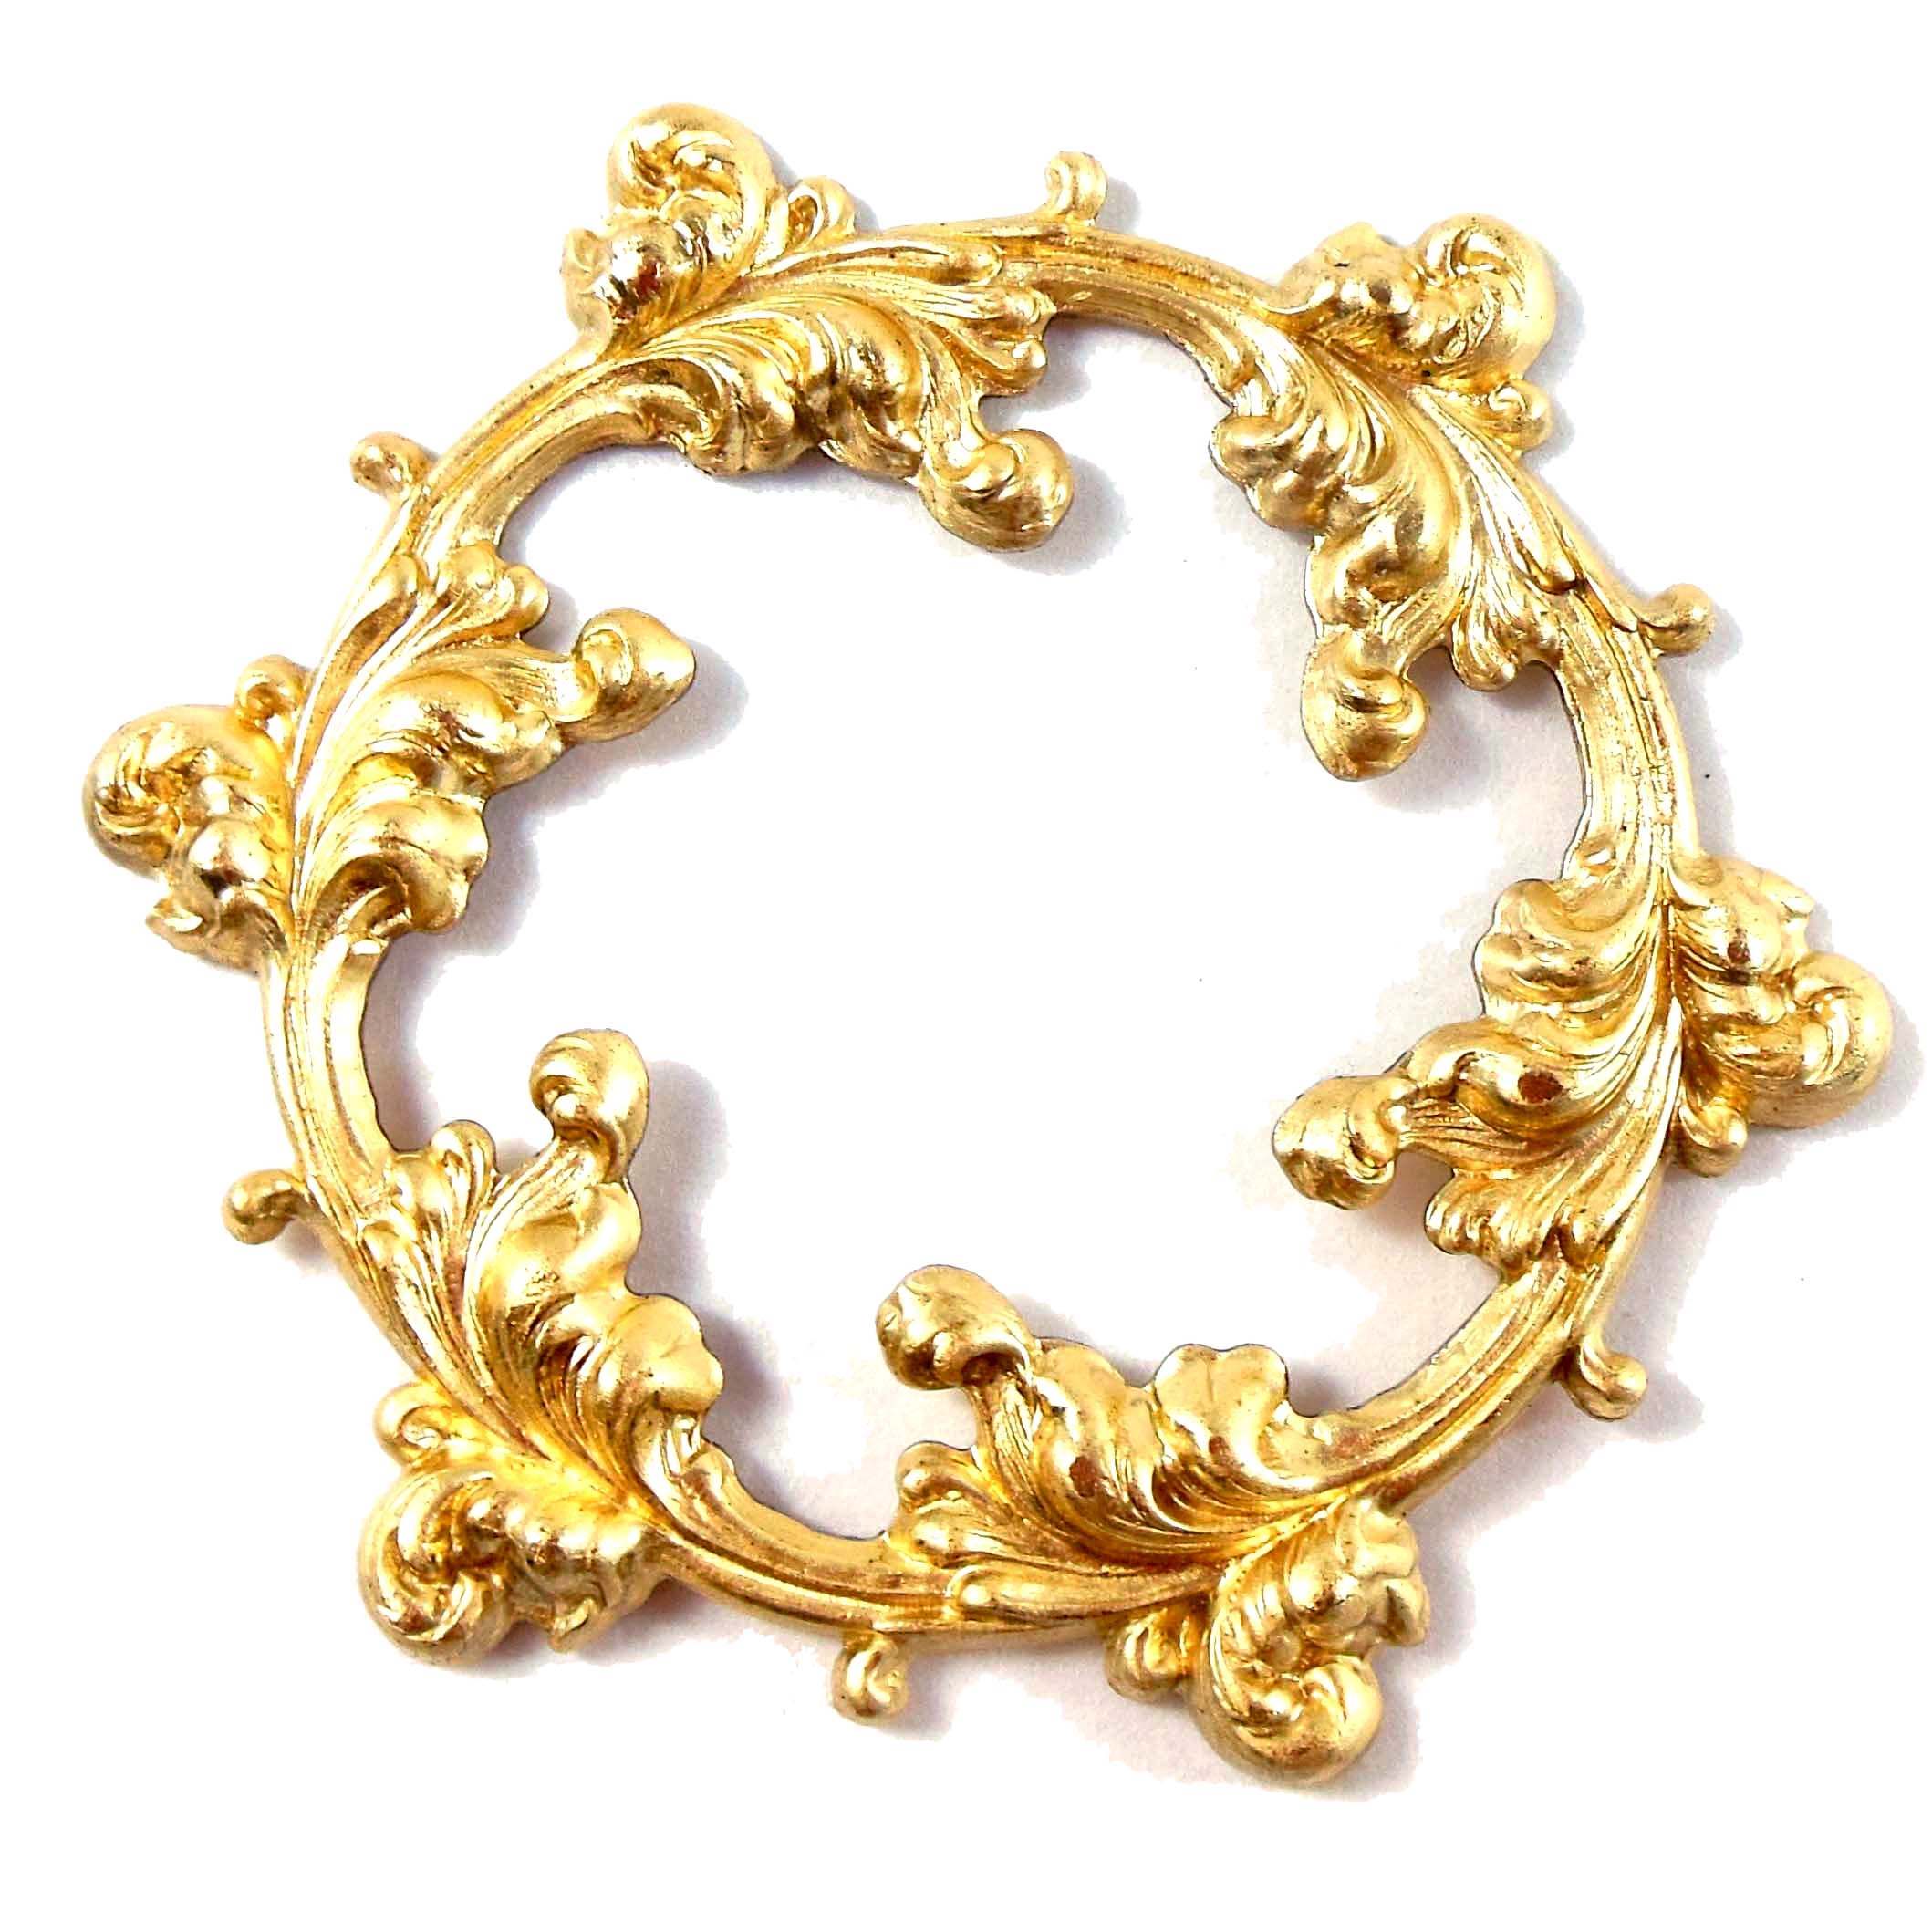 brass wreath, Victorian wreath, jewelry making